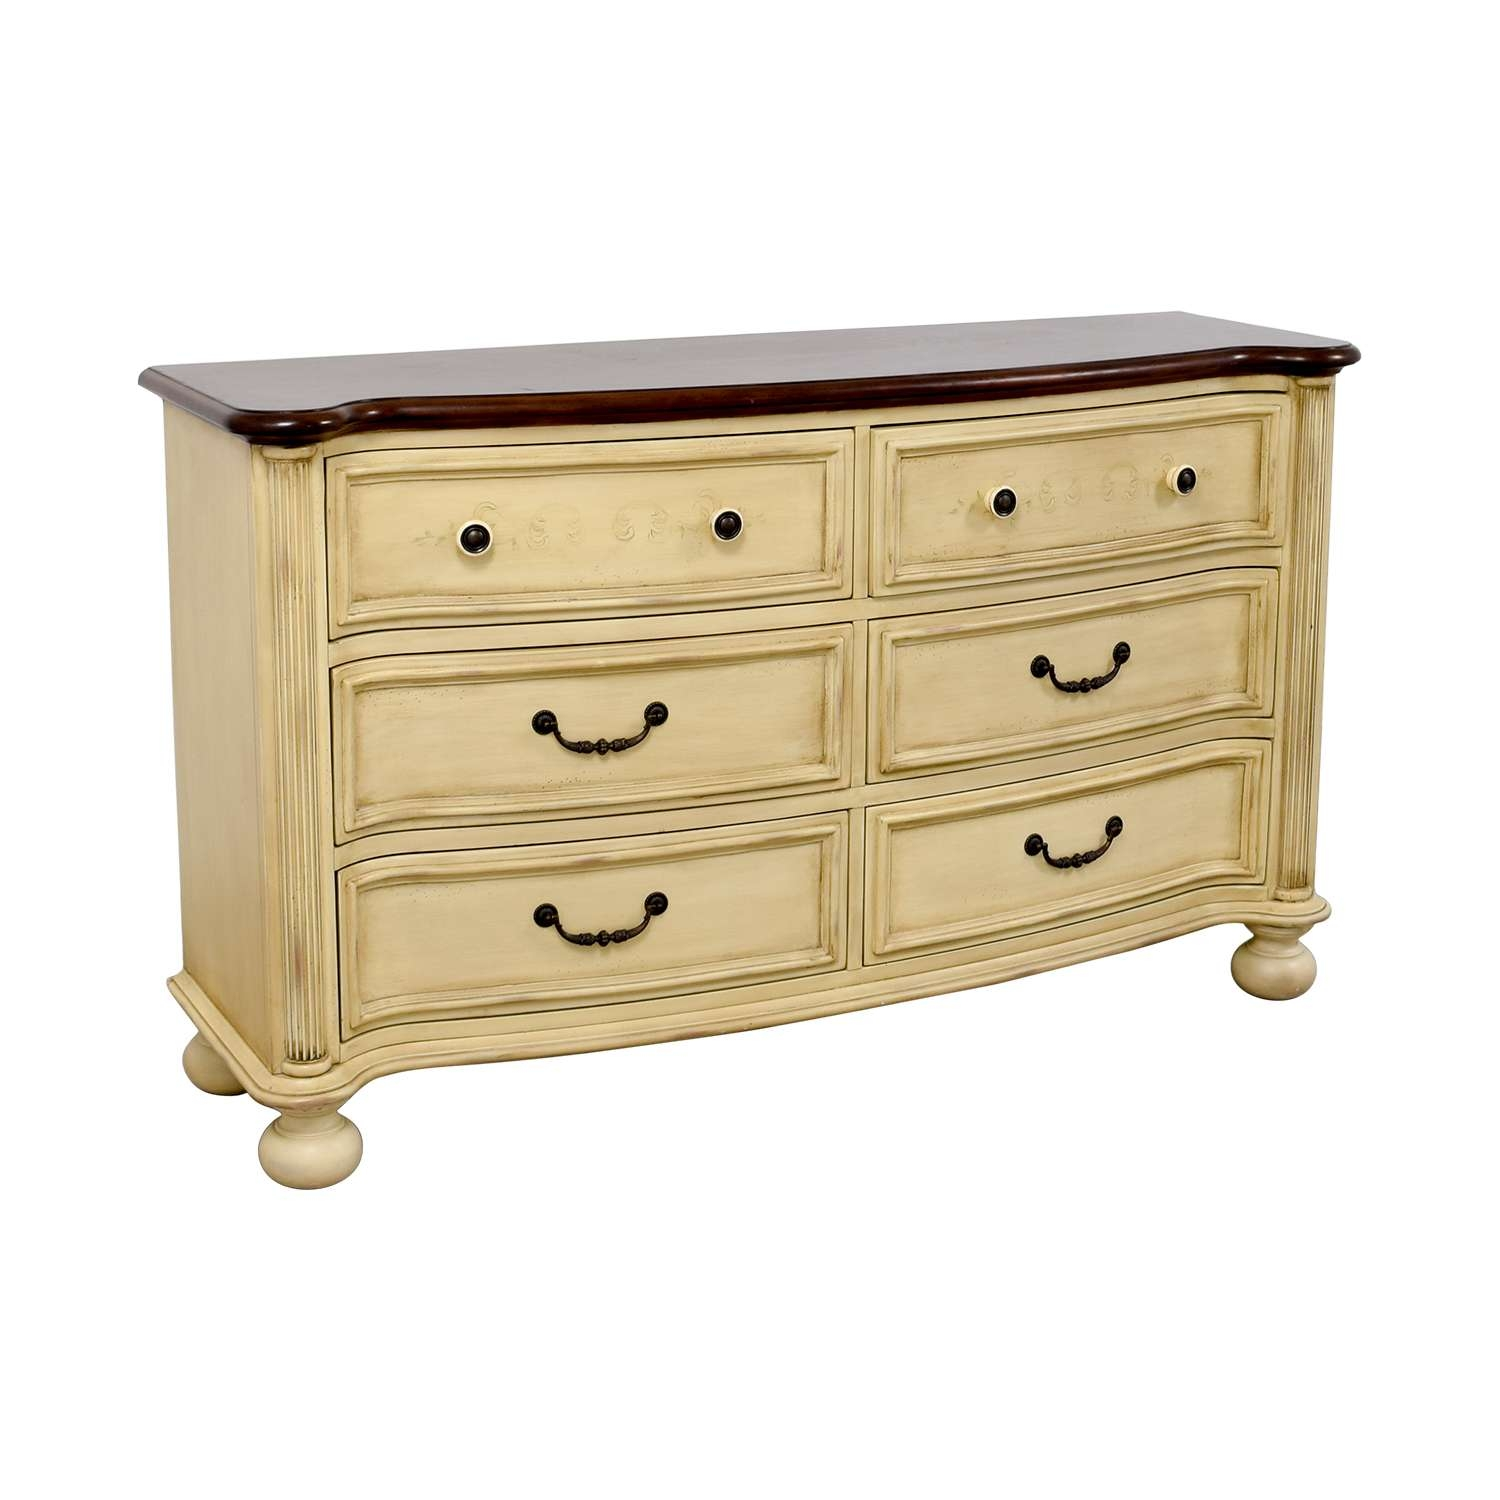 67% Off – Hooker Furniture Hooker Furniture Six Drawer Dresser In Second Hand Dressers And Sideboards (View 5 of 20)